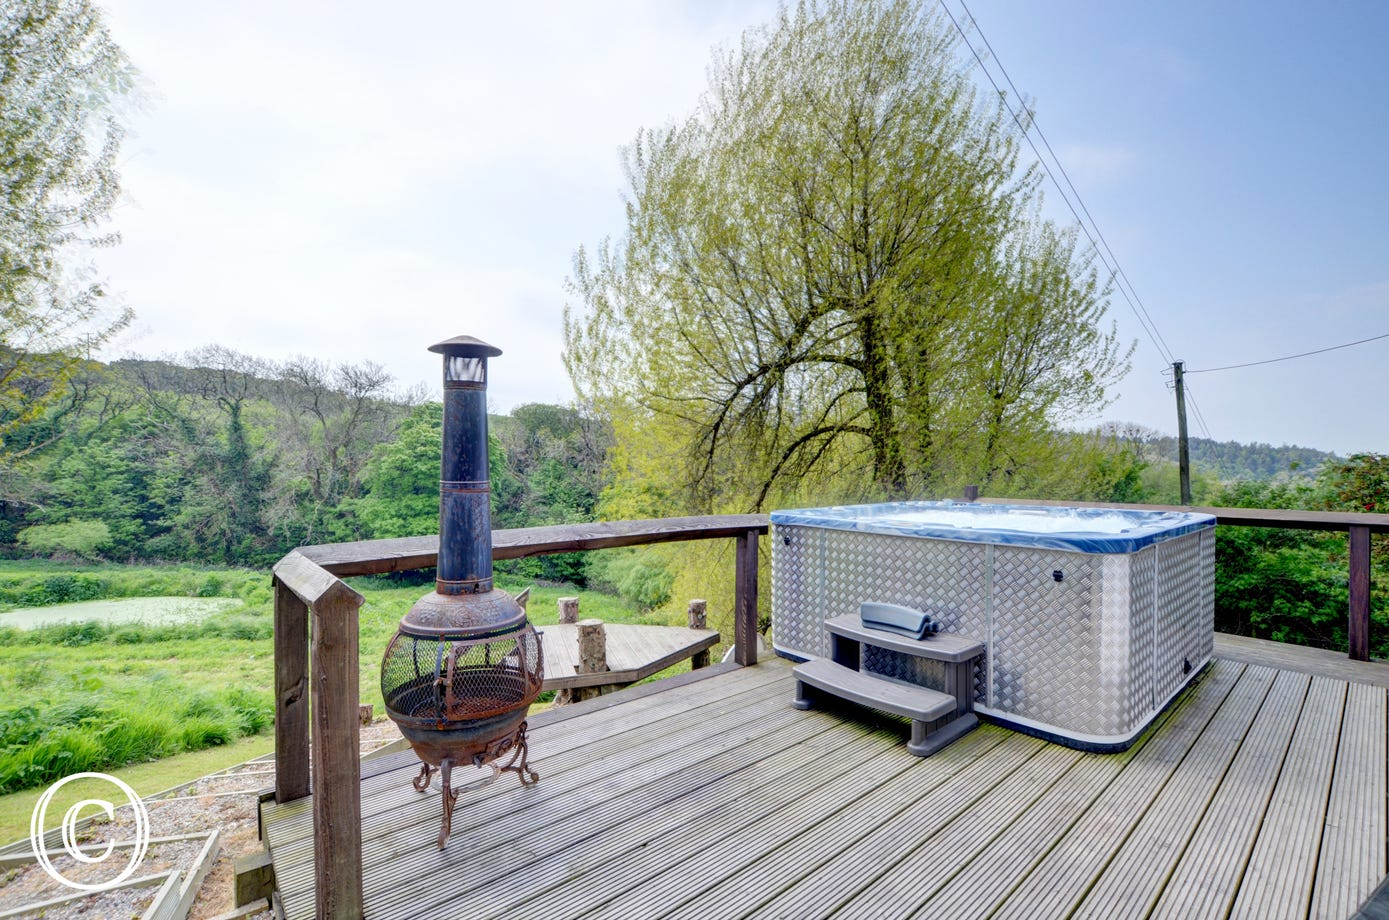 The hot tub area and outside log burner, and ideal way to relax at the end of the day